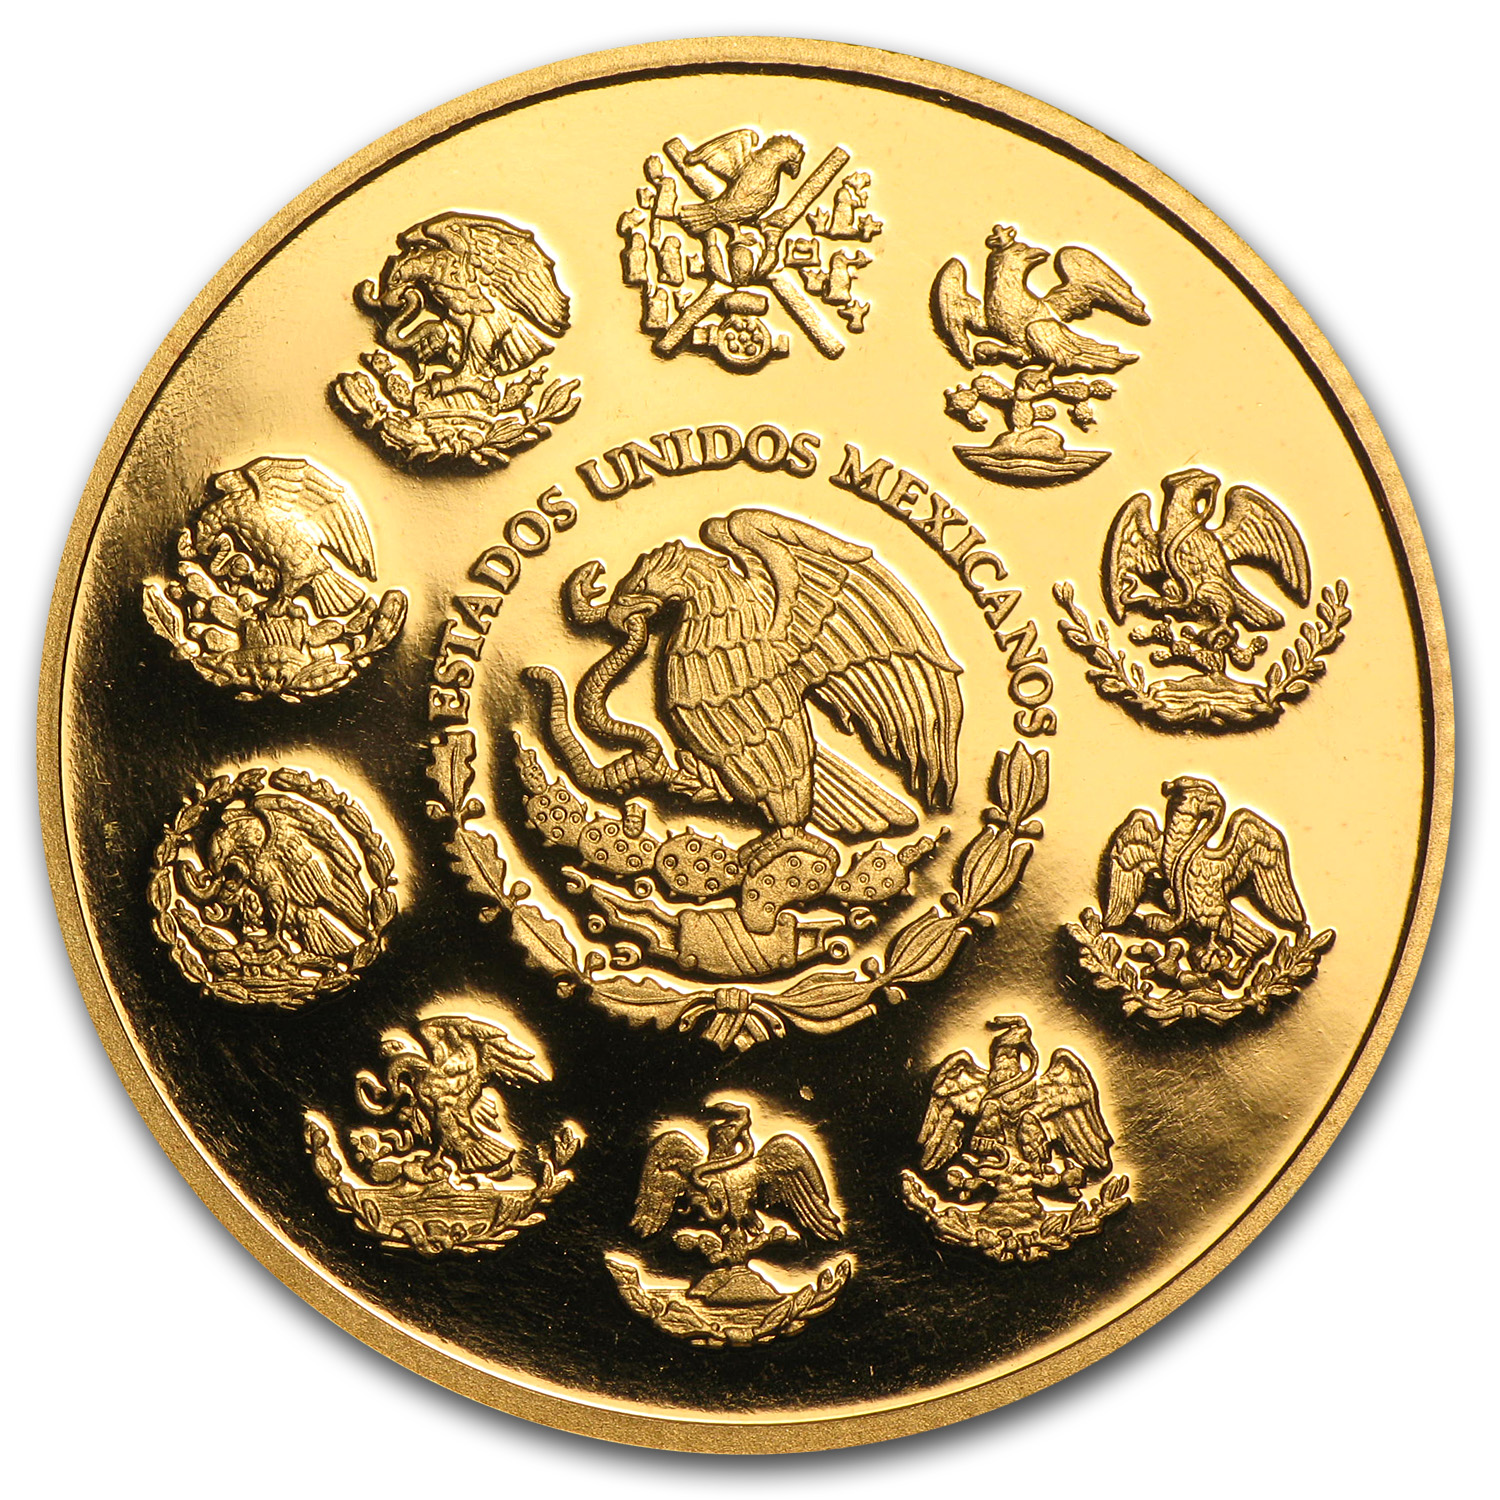 2010 Mexico 1 oz Proof Gold Libertad